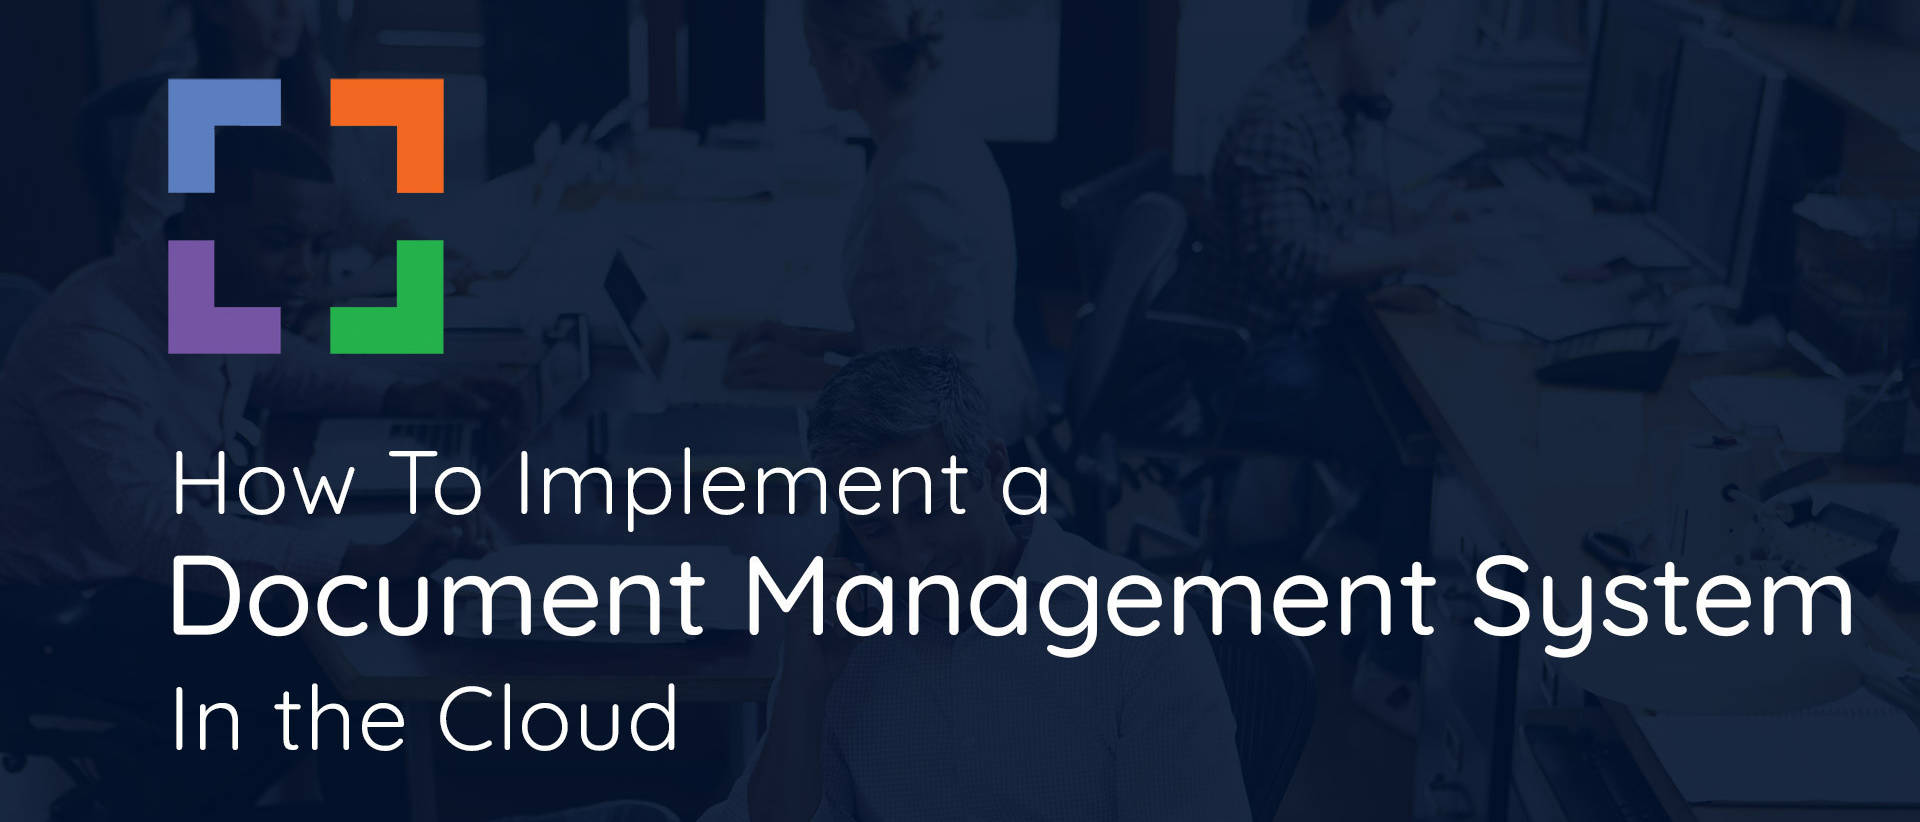 How to Implement a Document Management System in the Cloud